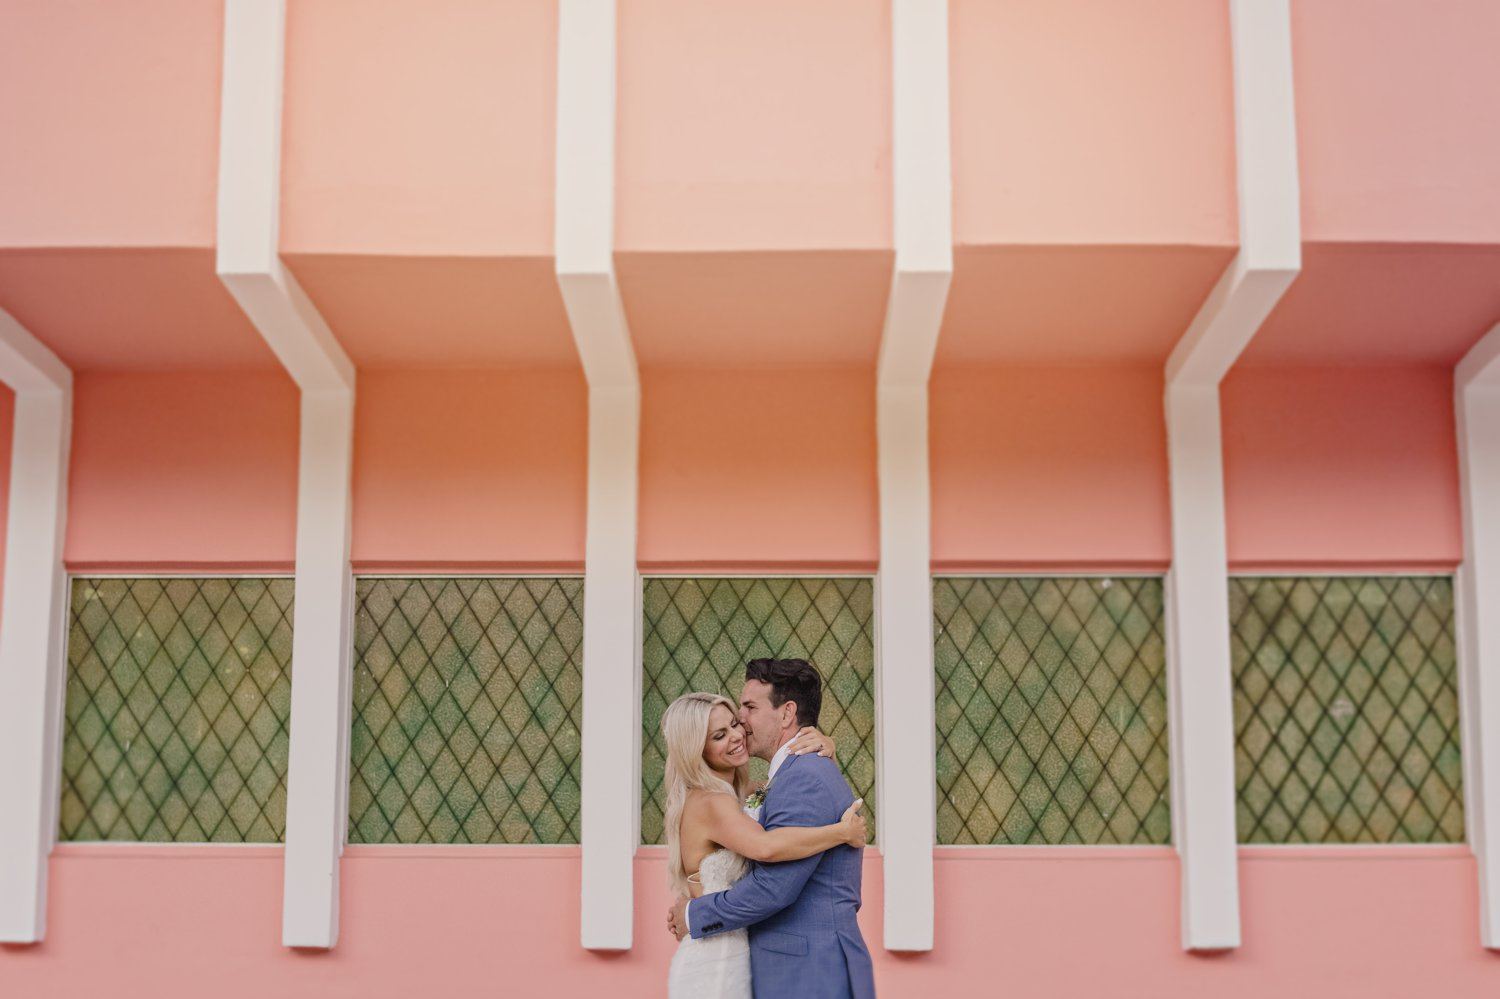 wedding couple portrait on a pink wall in miami florida w hotel south beach